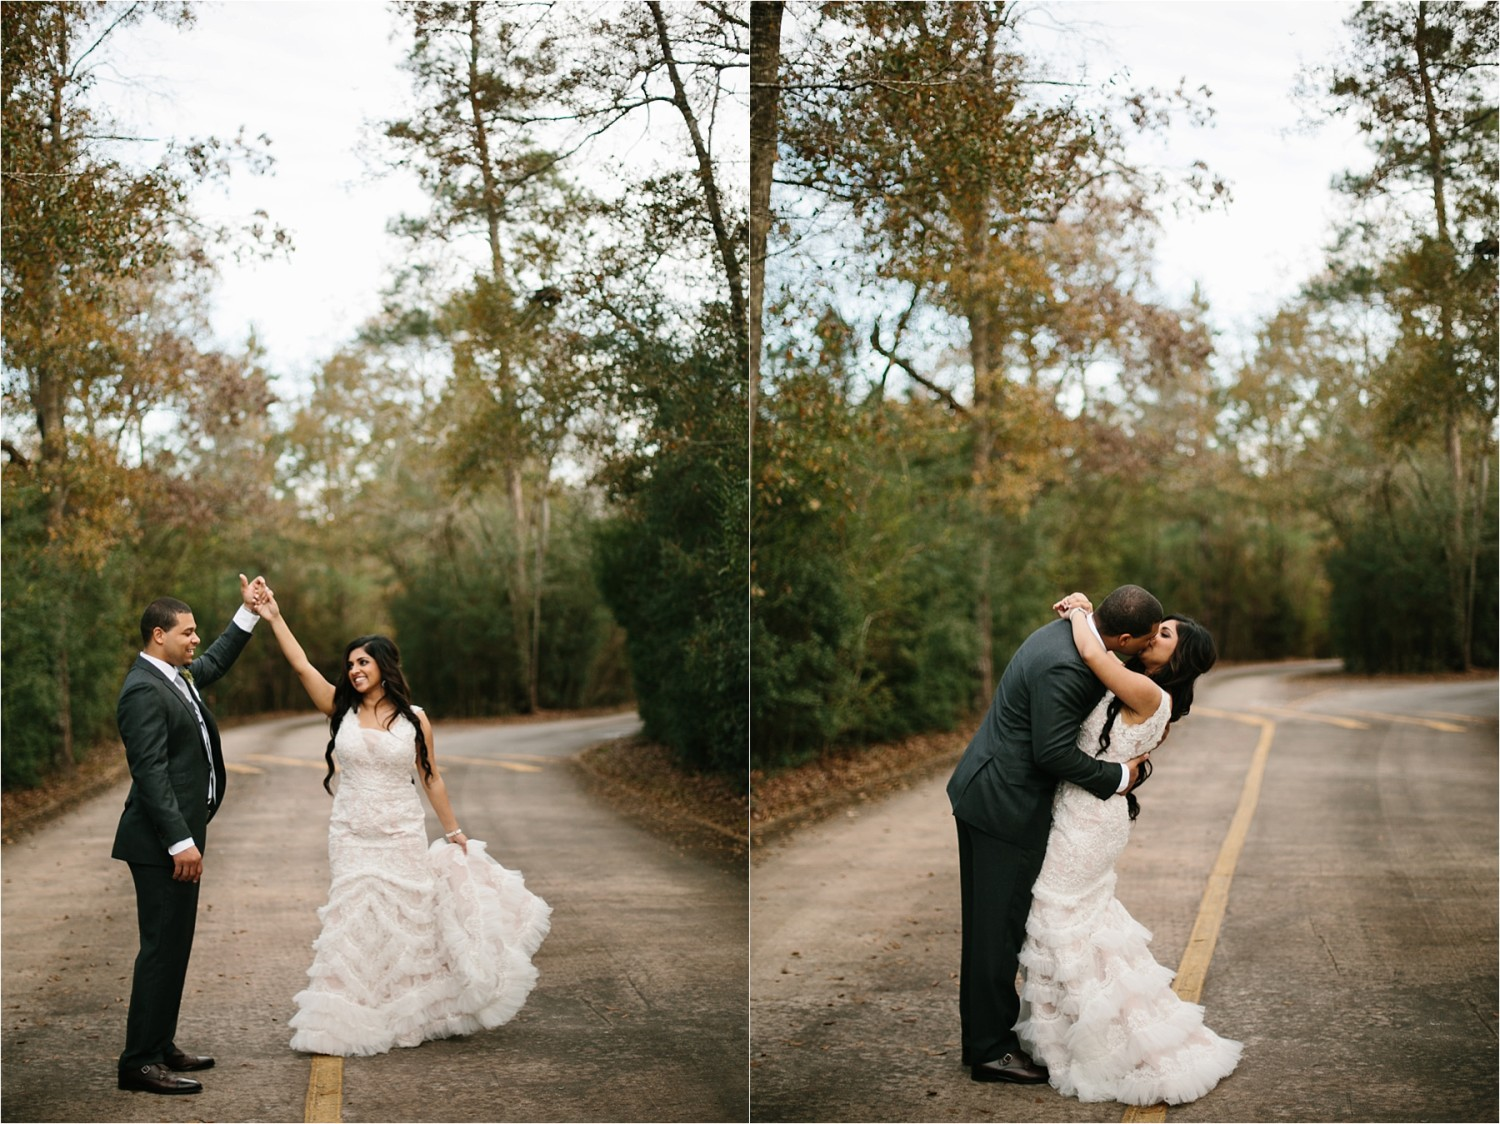 Jeanpaul + Ann __ a colorful wedding at Ashton Gardens in Houston TX by North Texas Wedding Photographer Rachel Meagan Photography _ 55